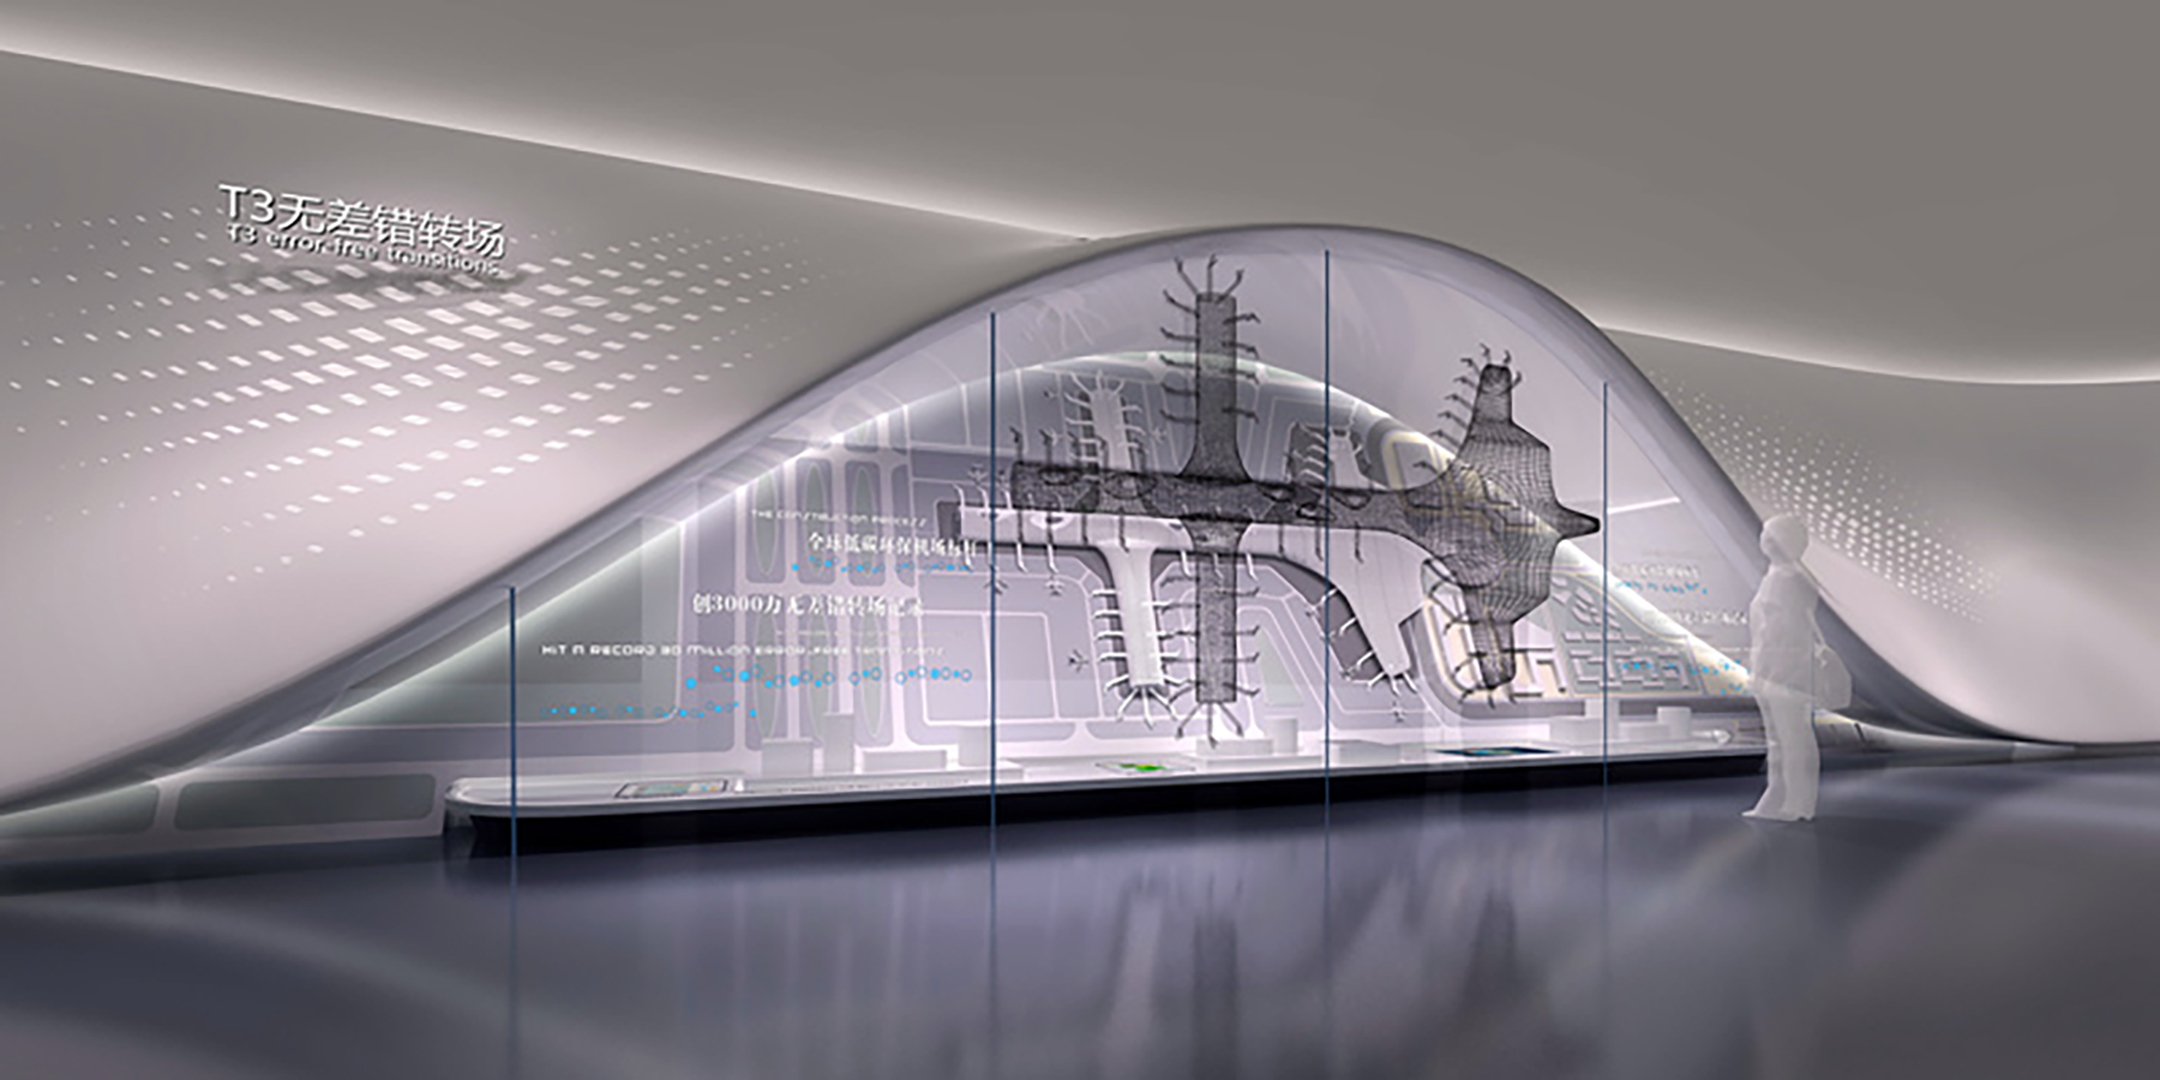 67-shenzhen-airport-enterprise-development-exhibition-hall